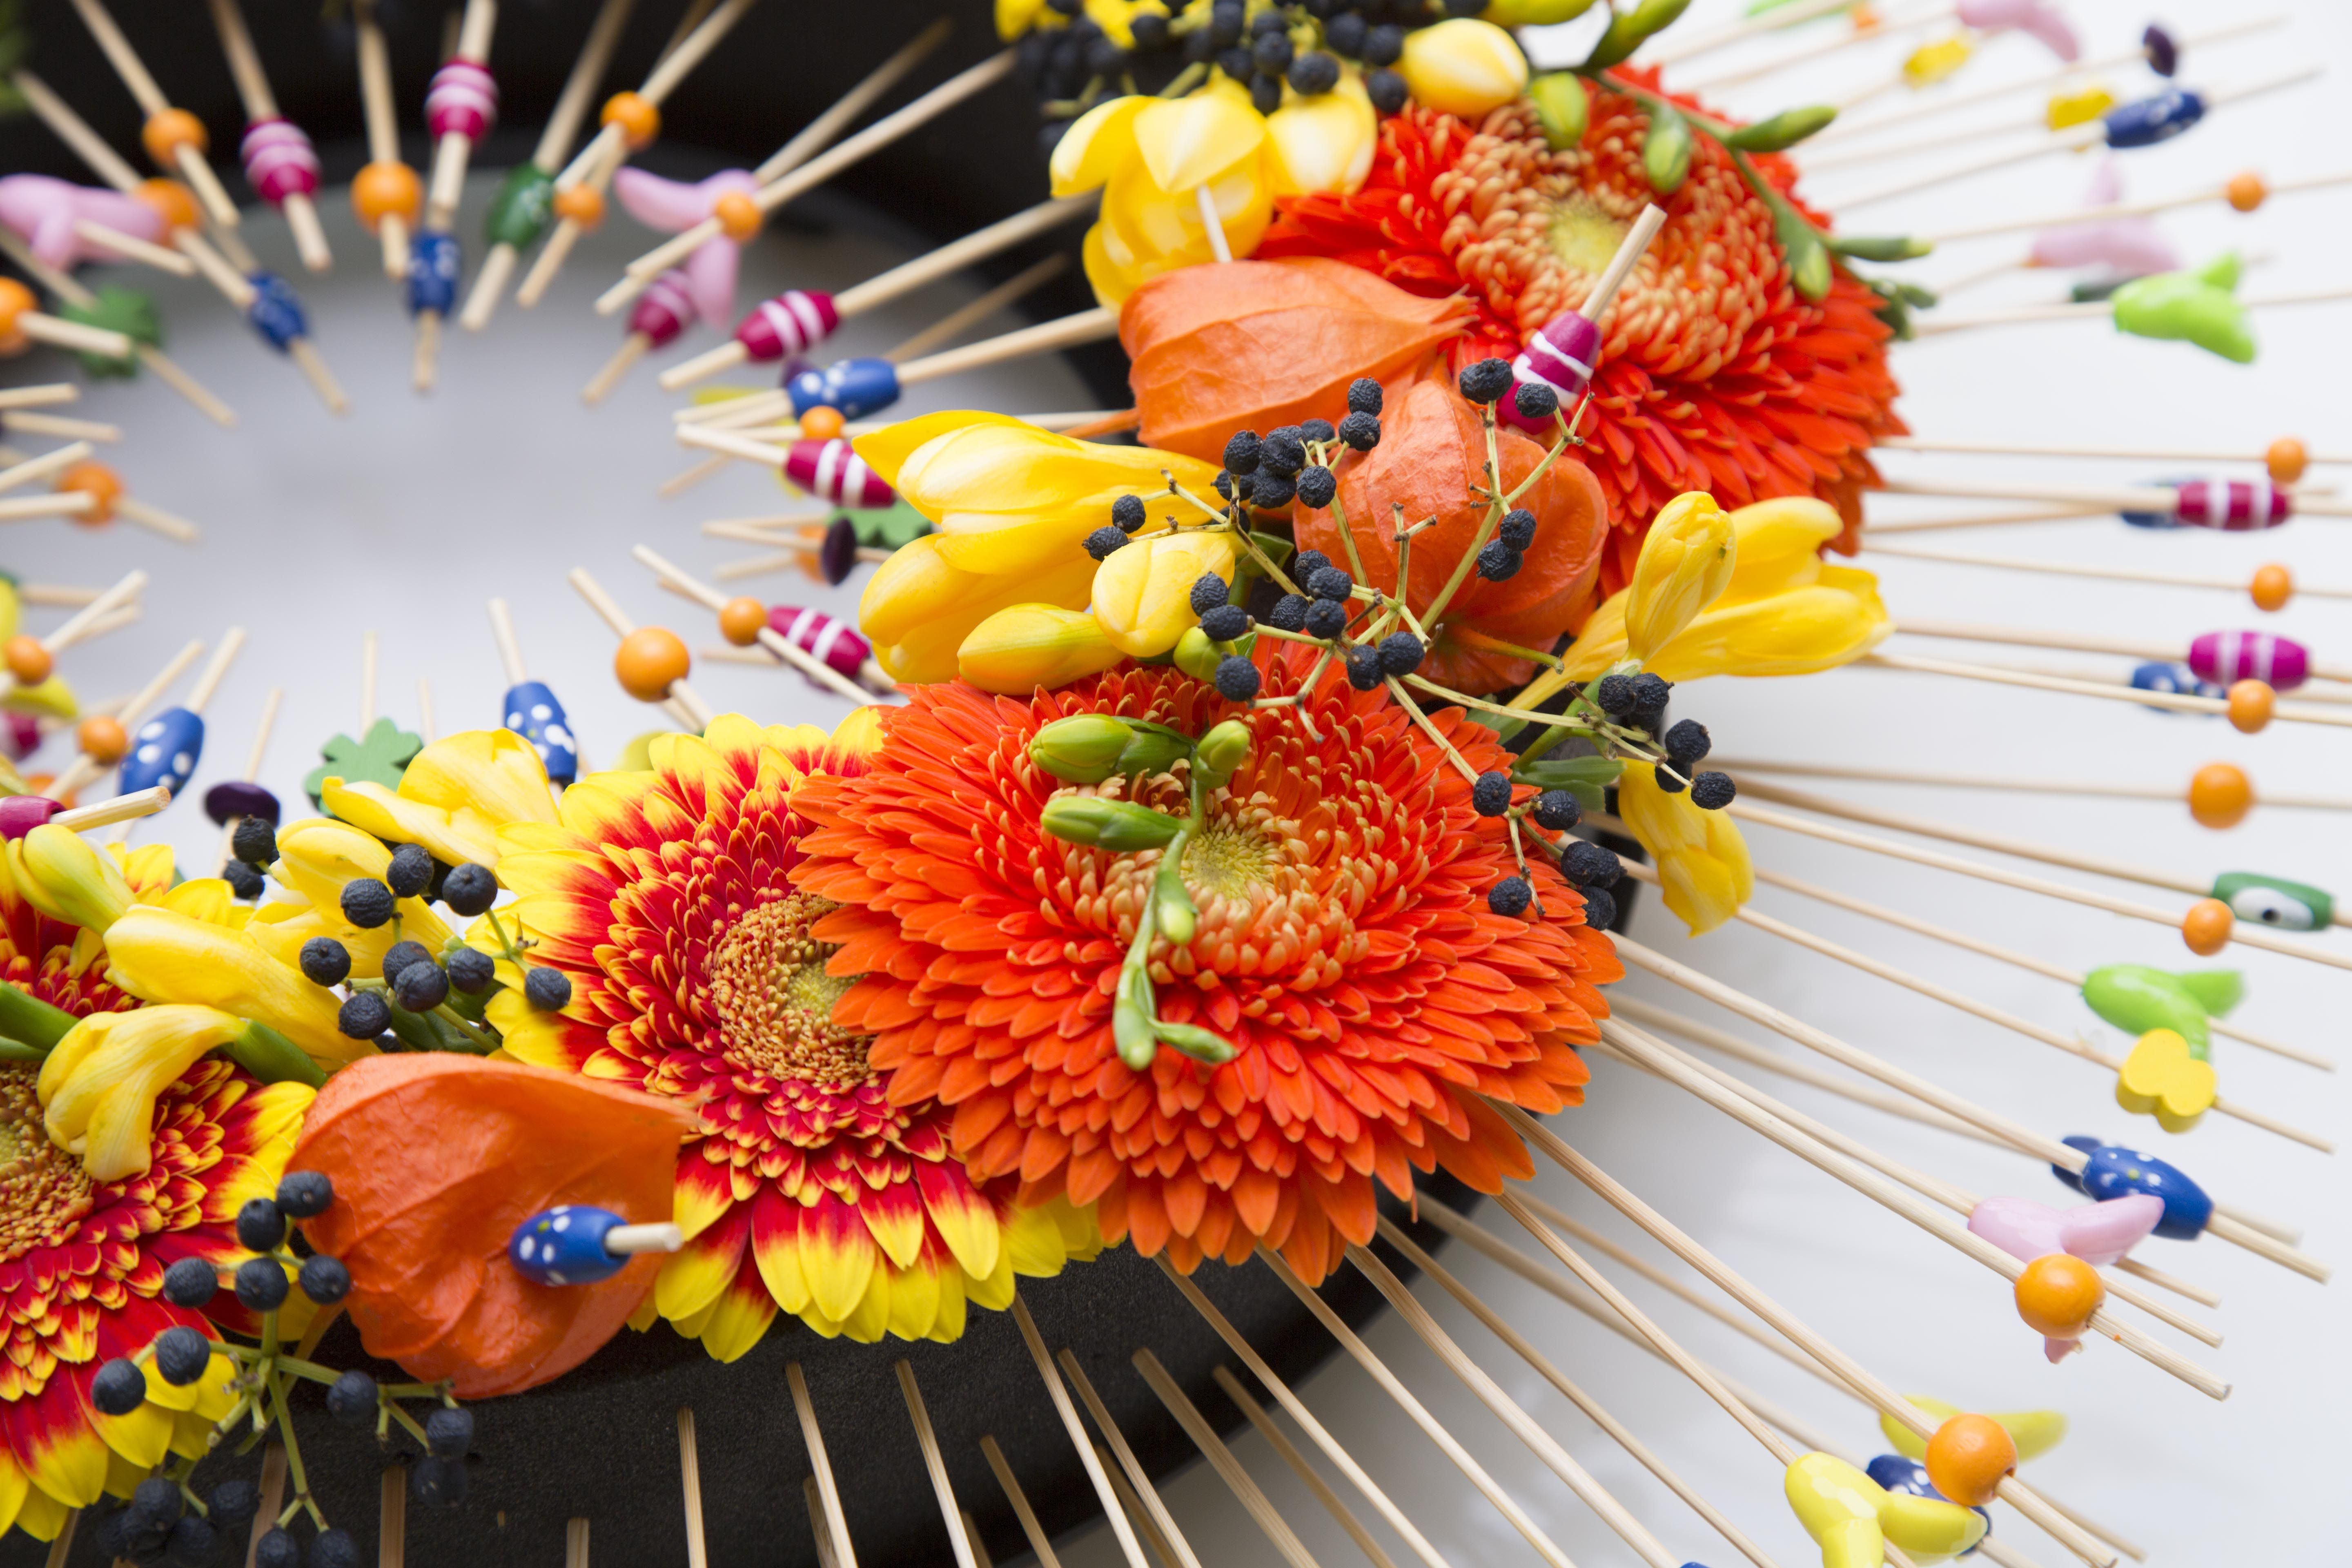 Colors that pop, that's what Alex Segura likes in his floral design. In this flower arrangement he used 'Eychenne All Black' foam by Oasis, which makes an even sharper contrast with the bright colored gerberas 'Anita' and 'Antique', freesia 'Soleil', Physalis and Viburnum. Fun cocktail sticks add to a summery feeling!